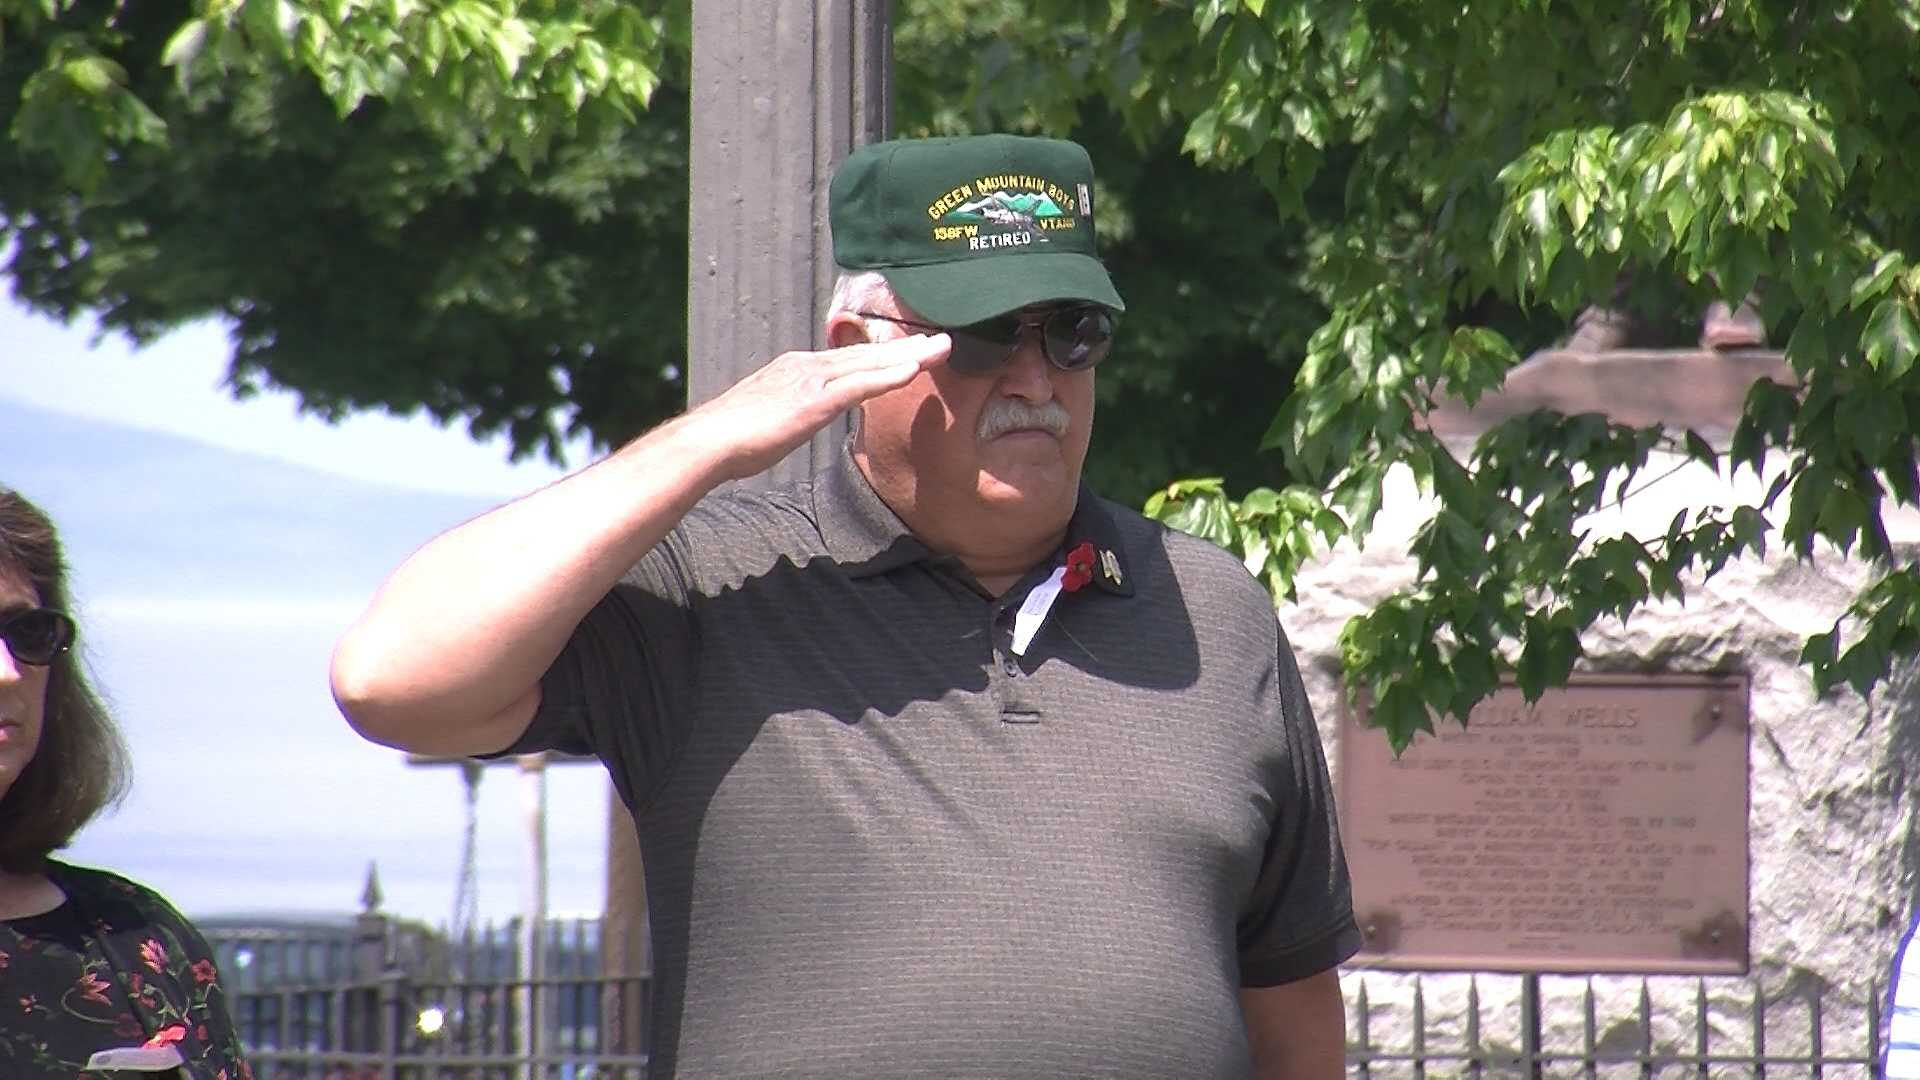 Vets, families celebrate real Memorial Day